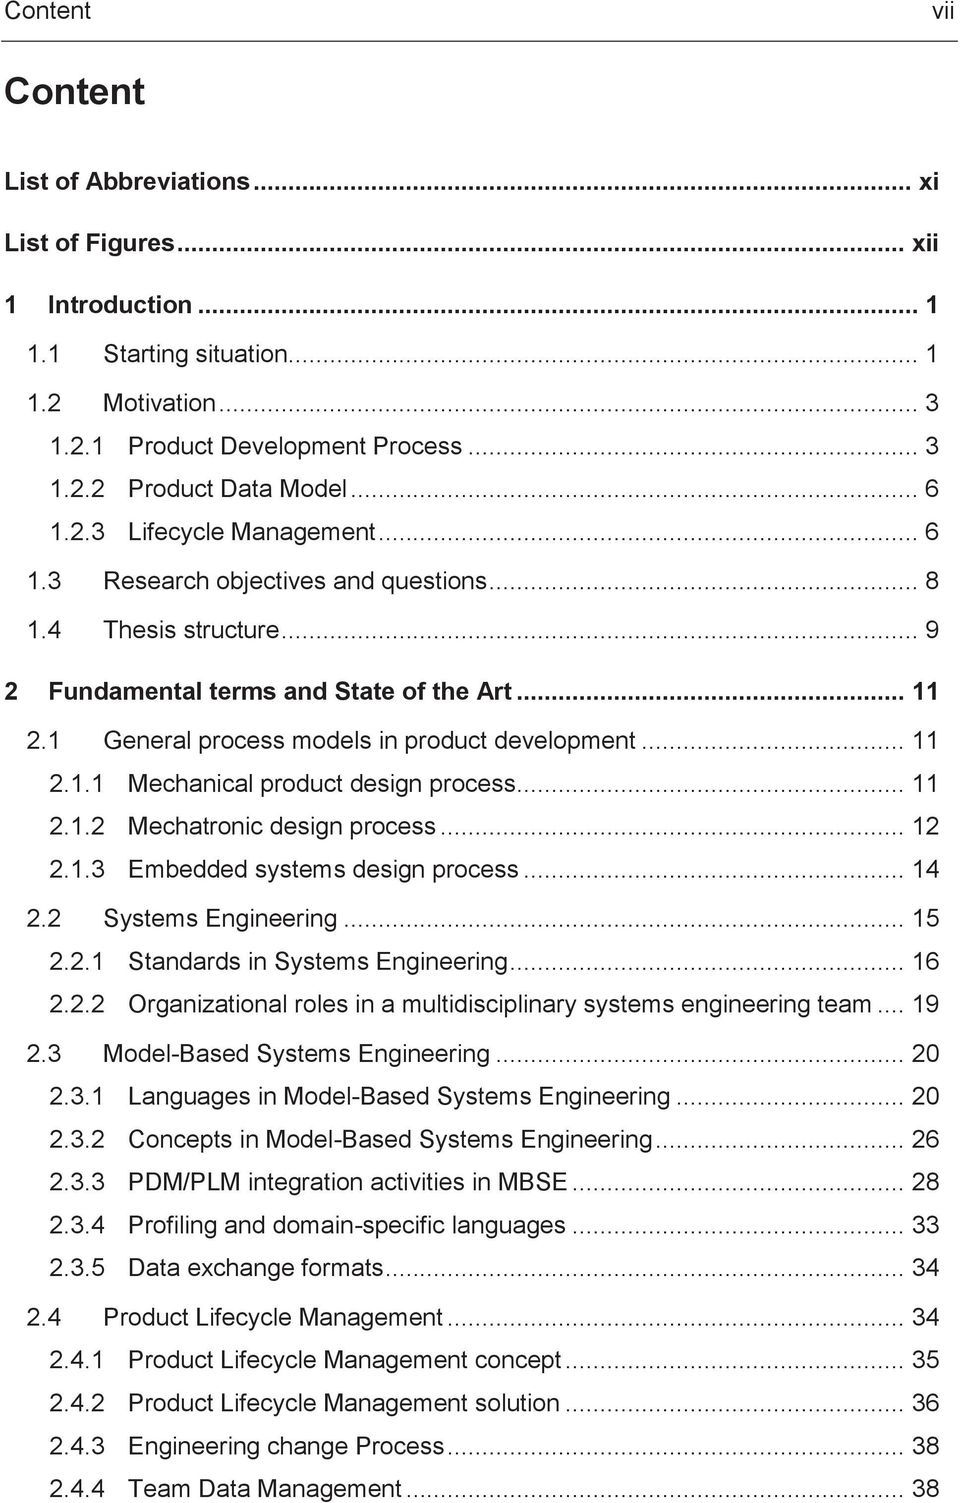 1 General process models in product development... 11 2.1.1 Mechanical product design process... 11 2.1.2 Mechatronic design process... 12 2.1.3 Embedded systems design process... 14 2.